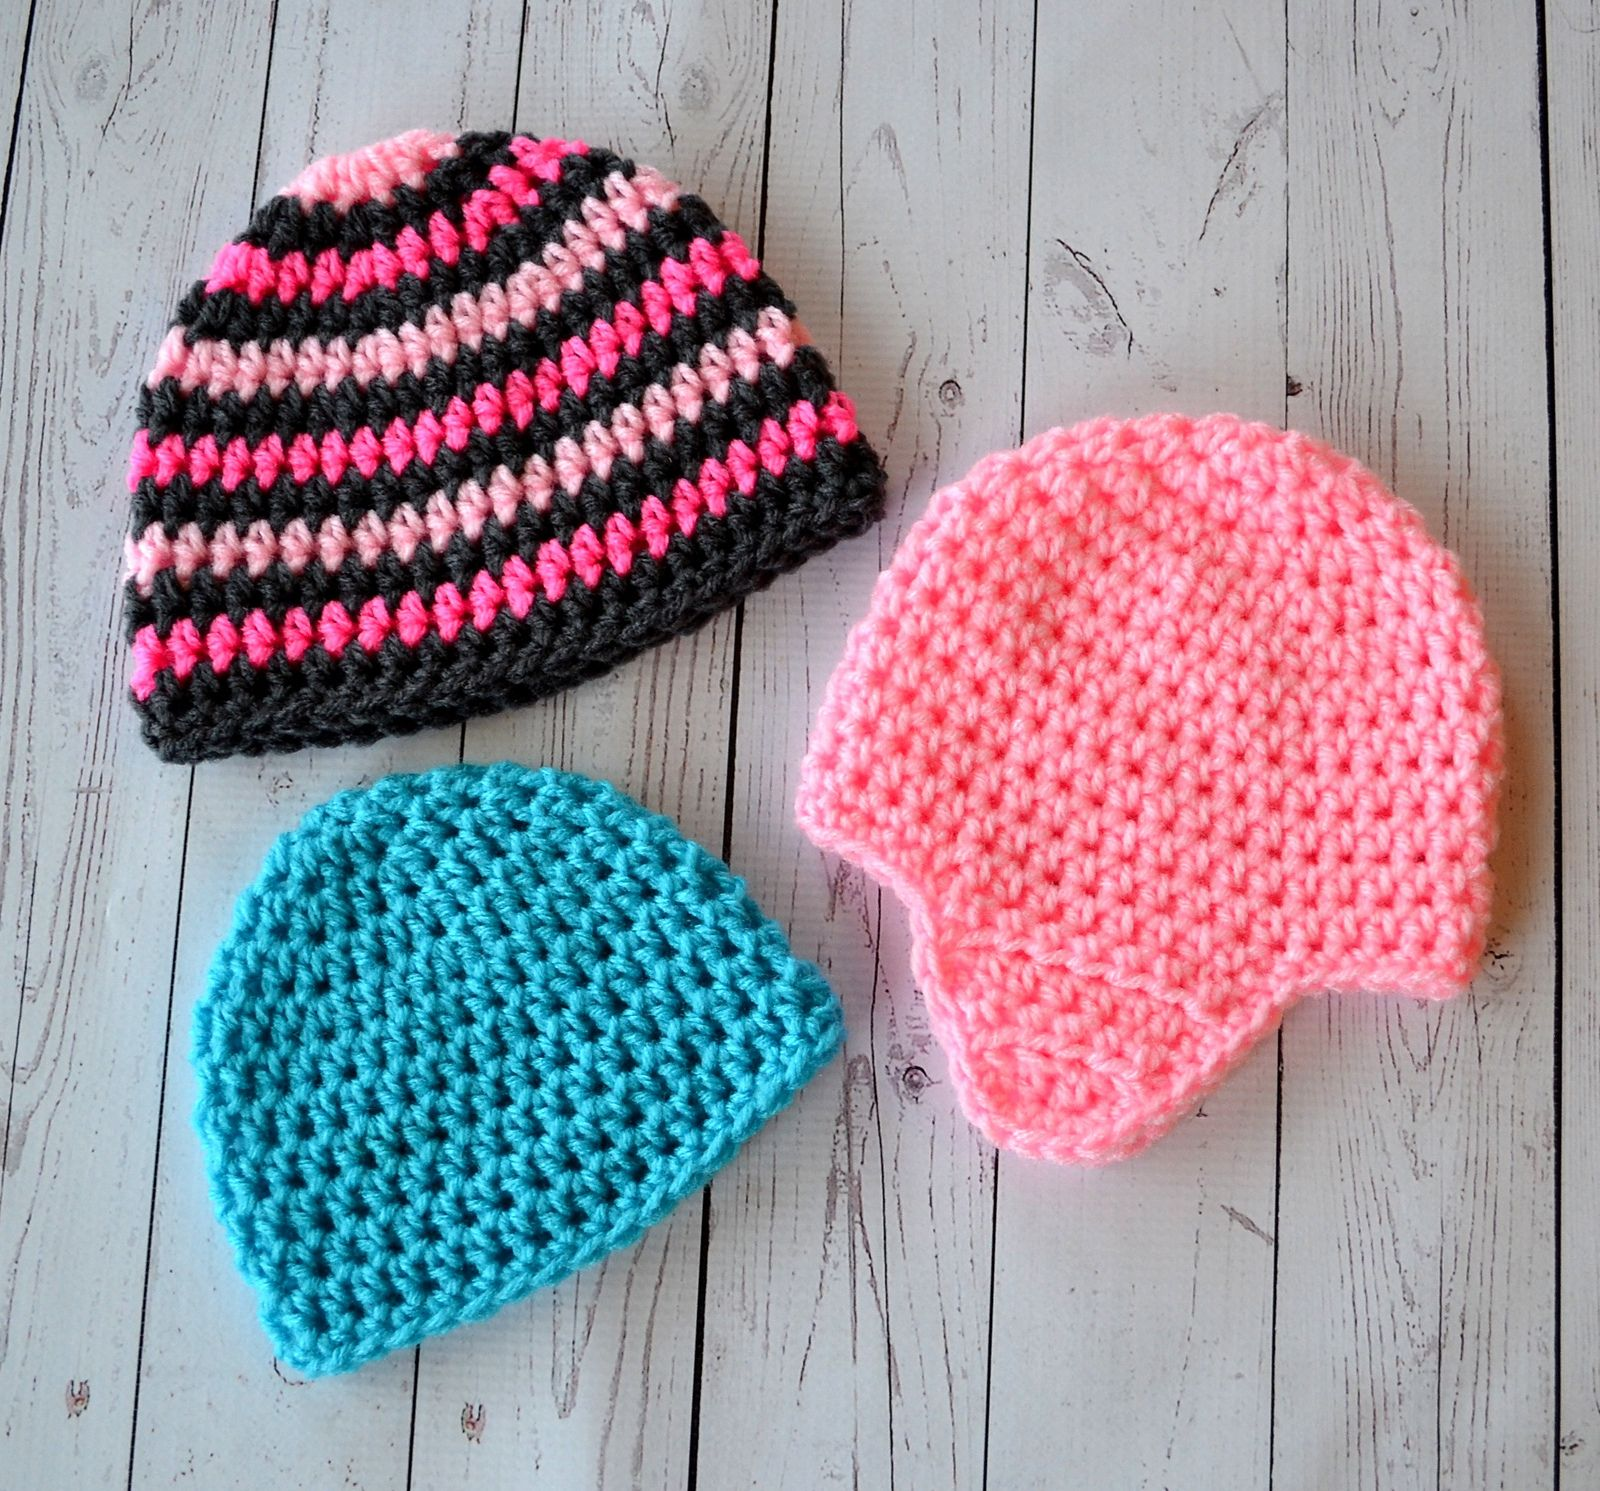 Basic Hat With Earflap Option By Christins From My Sweet Potato 3